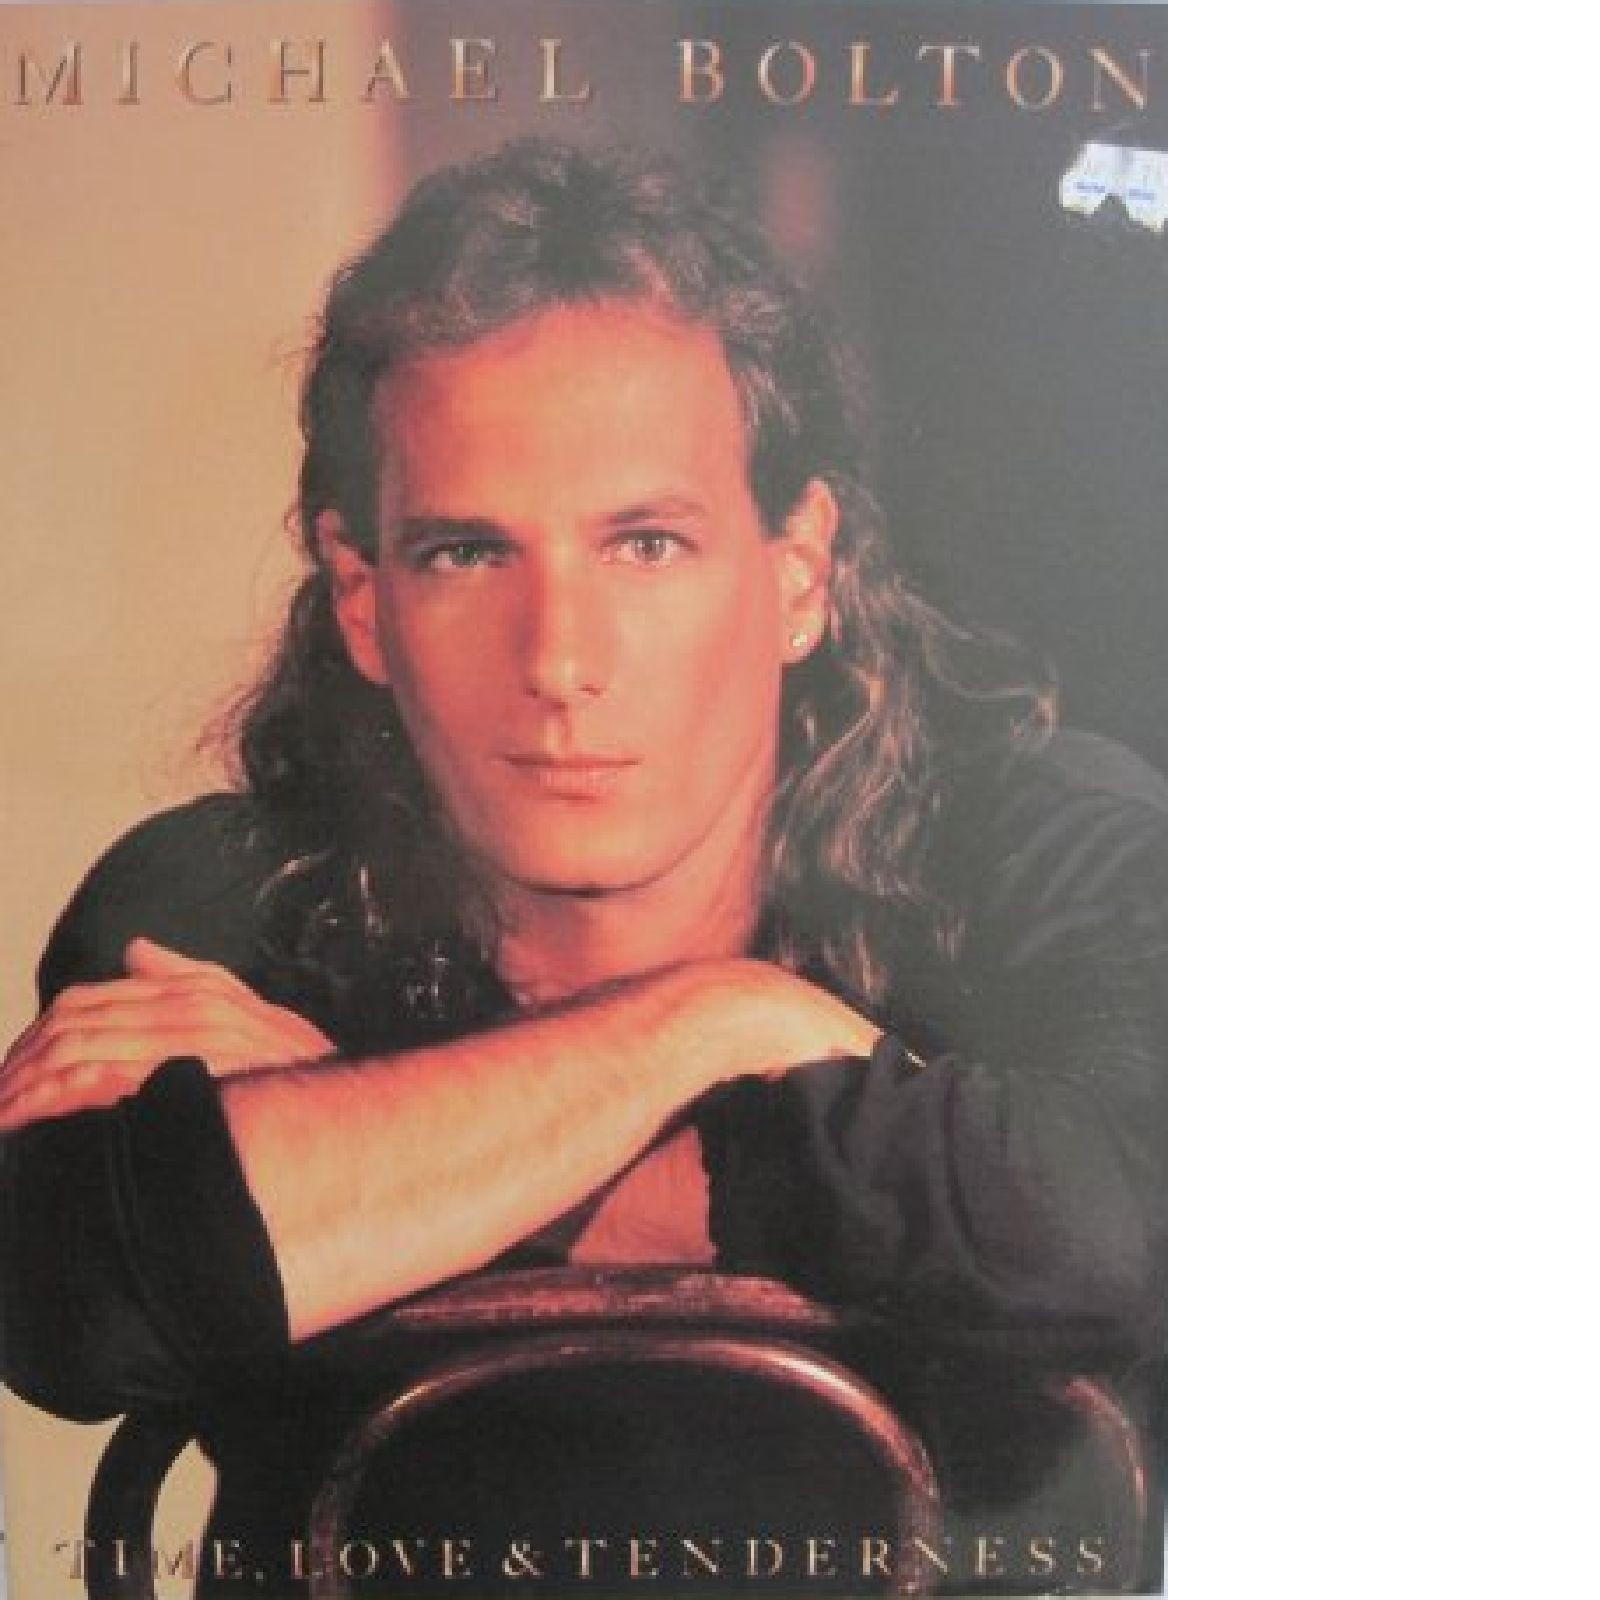 Michael Bolton Time Love & Tenderness Sheet Music Piano Vocal Guitar Book S145